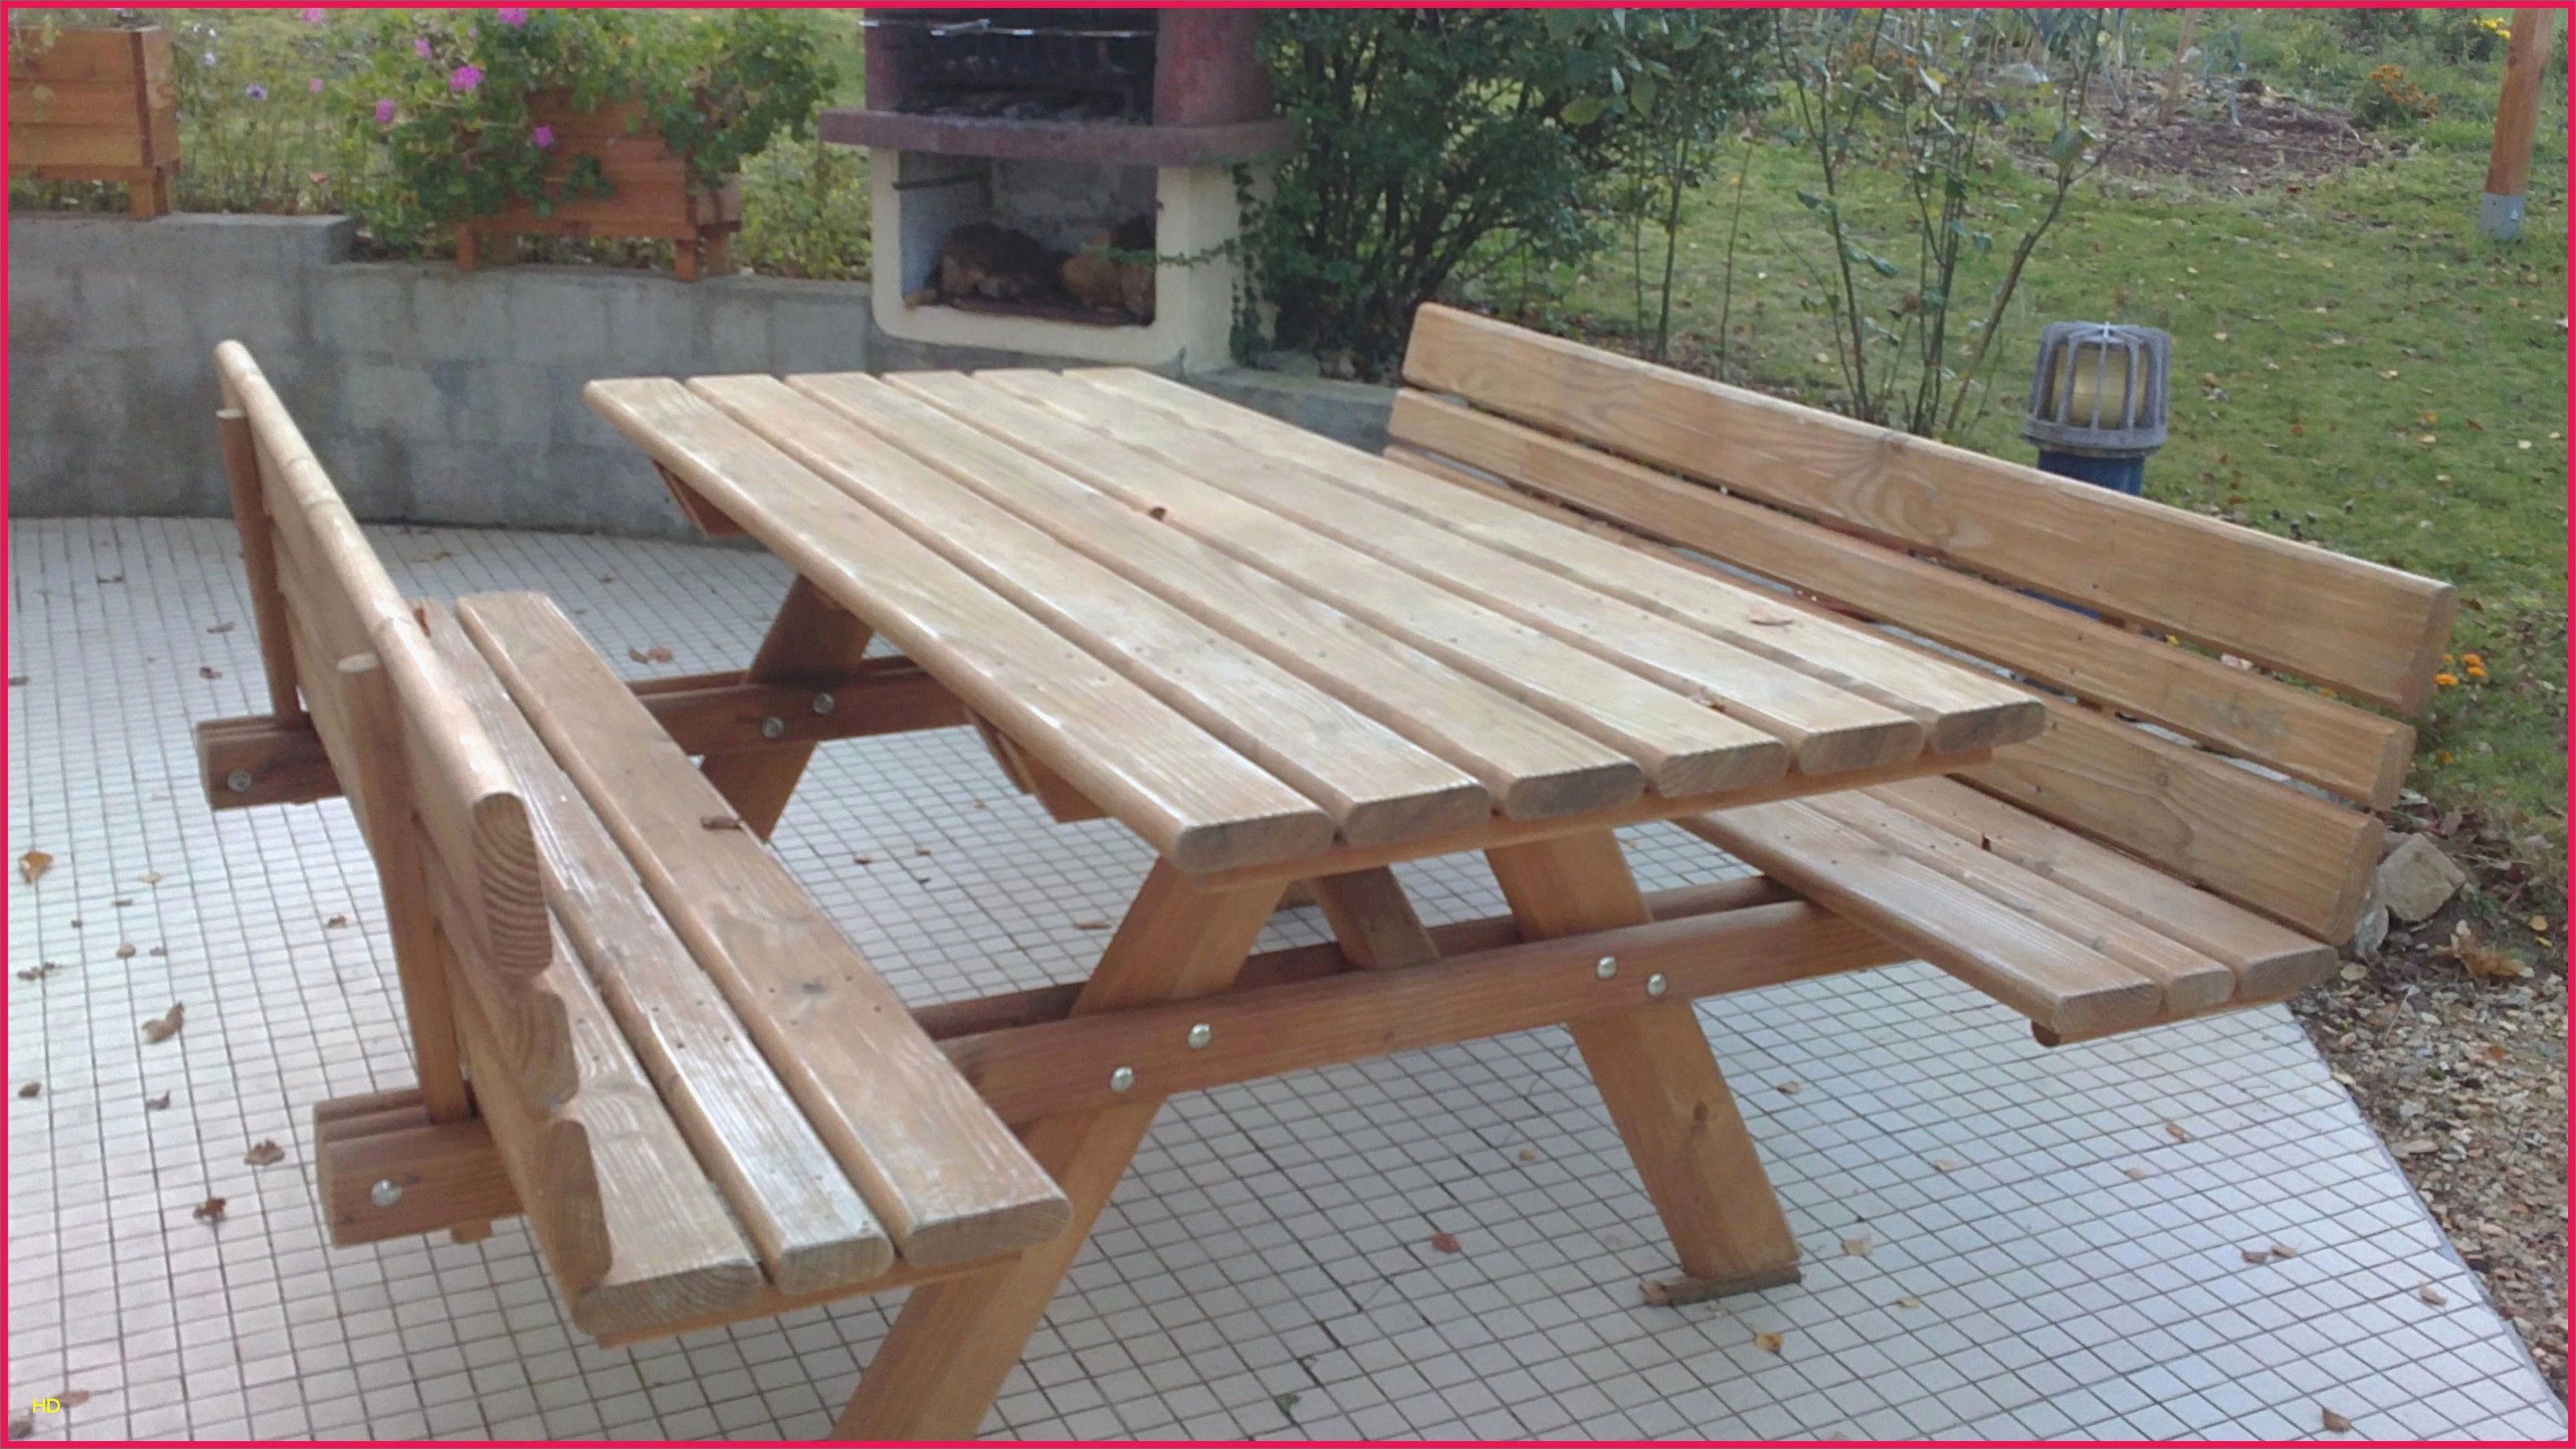 Petit Banc En Bois Petit Banc En Bois Petit Banc Bois Fabrication D Un Petit Banc En Bois Dangerous Technology Outdoor Tables Picnic Table Outdoor Furniture